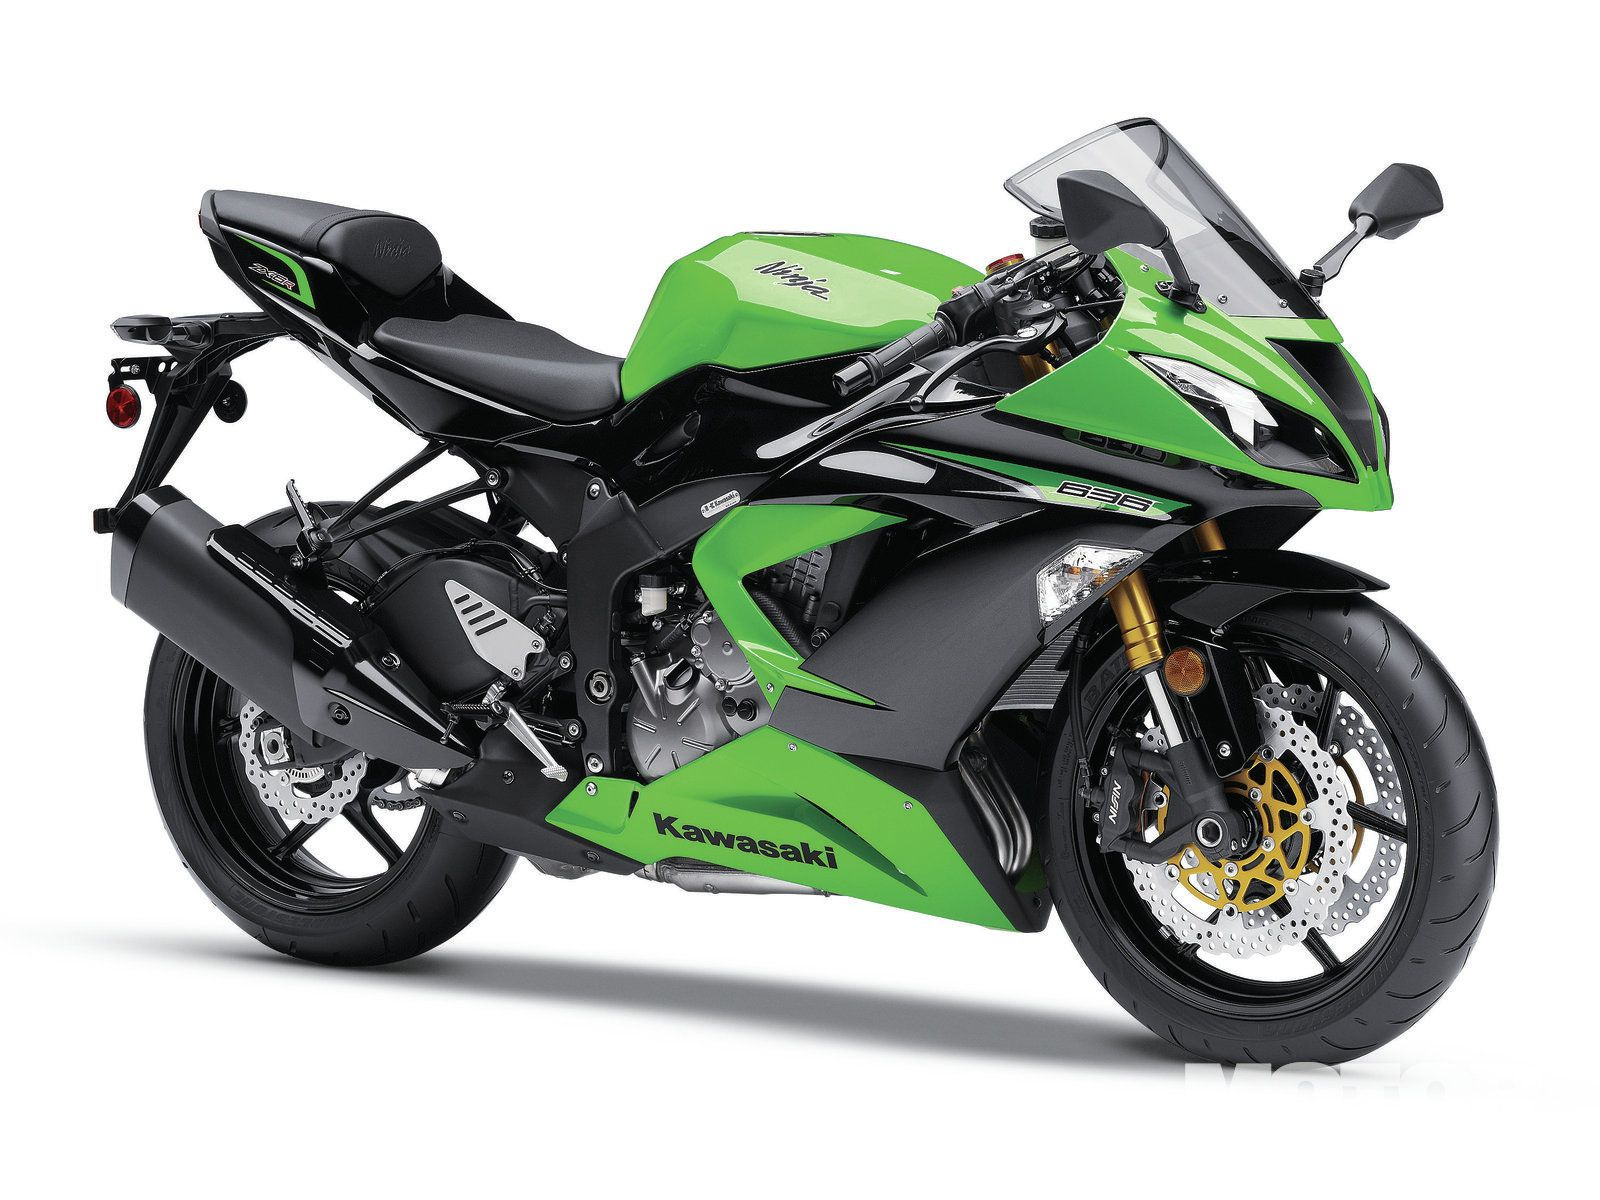 2013 Kawasaki Ninja ZX-6R Review | 2013 ZX-6R 636cc Road ... on